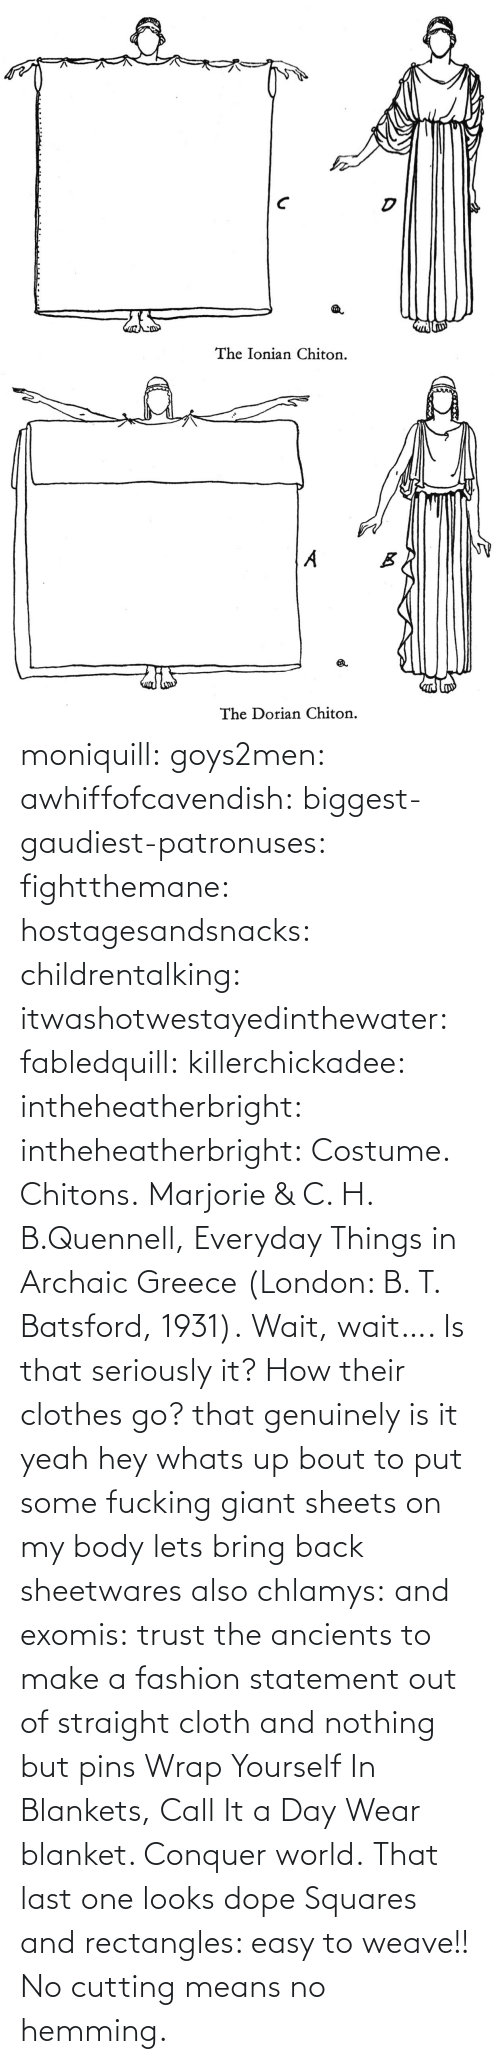 pins: moniquill: goys2men:  awhiffofcavendish:  biggest-gaudiest-patronuses:  fightthemane:  hostagesandsnacks:  childrentalking:  itwashotwestayedinthewater:  fabledquill:  killerchickadee:  intheheatherbright:  intheheatherbright:  Costume. Chitons.  Marjorie & C. H. B.Quennell, Everyday Things in Archaic Greece (London: B. T. Batsford, 1931).  Wait, wait…. Is that seriously it? How their clothes go?  that genuinely is it  yeah hey whats up bout to put some fucking giant sheets on my body  lets bring back sheetwares  also chlamys: and exomis:  trust the ancients to make a fashion statement out of straight cloth and nothing but pins  Wrap Yourself In Blankets, Call It a Day  Wear blanket. Conquer world.   That last one looks dope    Squares and rectangles: easy to weave!! No cutting means no hemming.